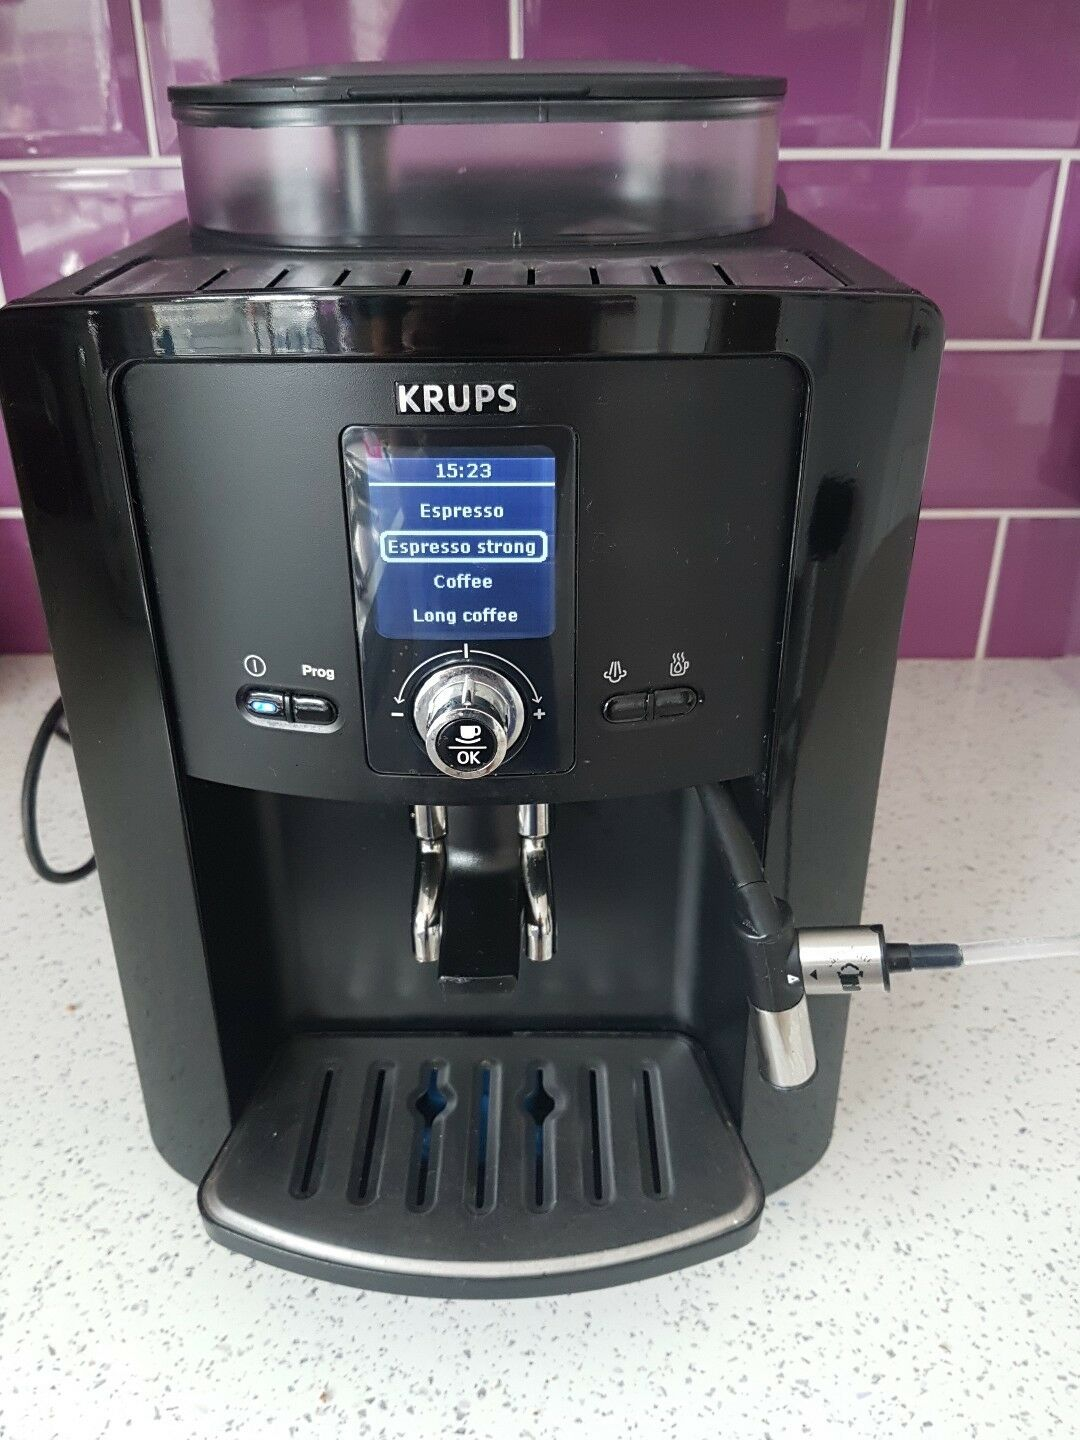 Krups Coffee Maker And Frother : Krups Espressaria EA8080 Bean to Cup Coffee Machine with auto milk frother .vgc ?171.69 ...